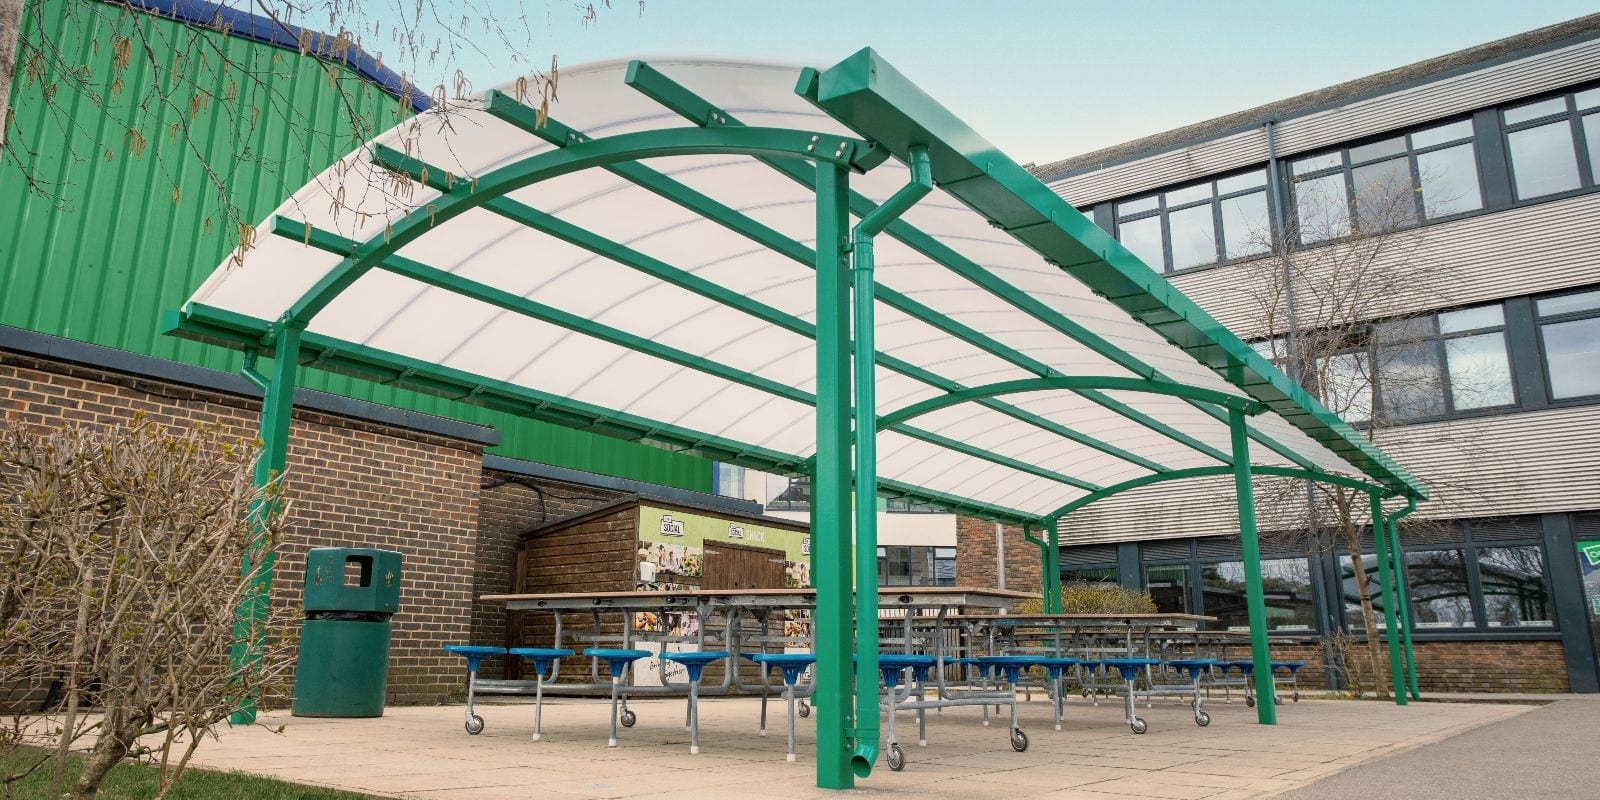 Freestanding shelter we created for Oasis Academy Coulsdon